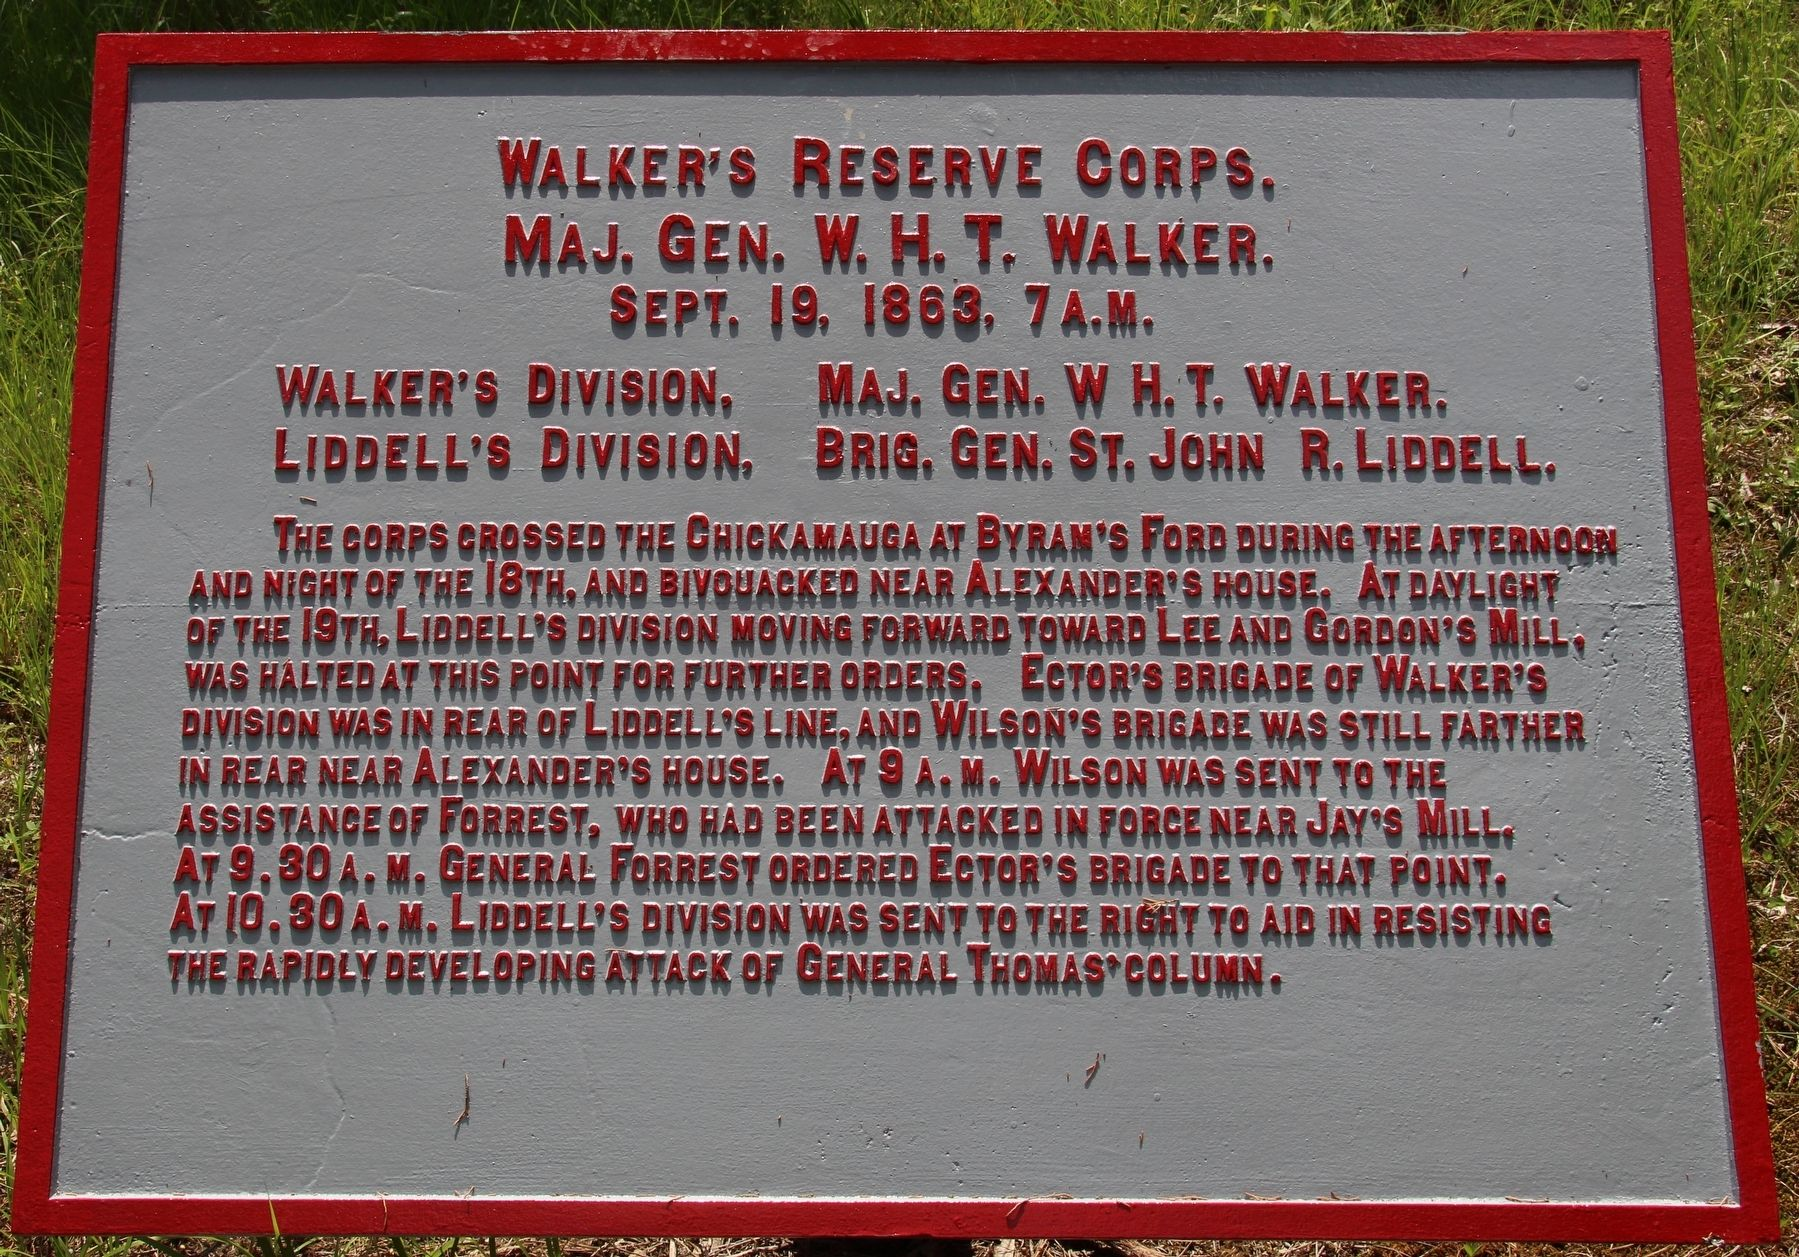 Walker's Reserve Corps Marker image. Click for full size.